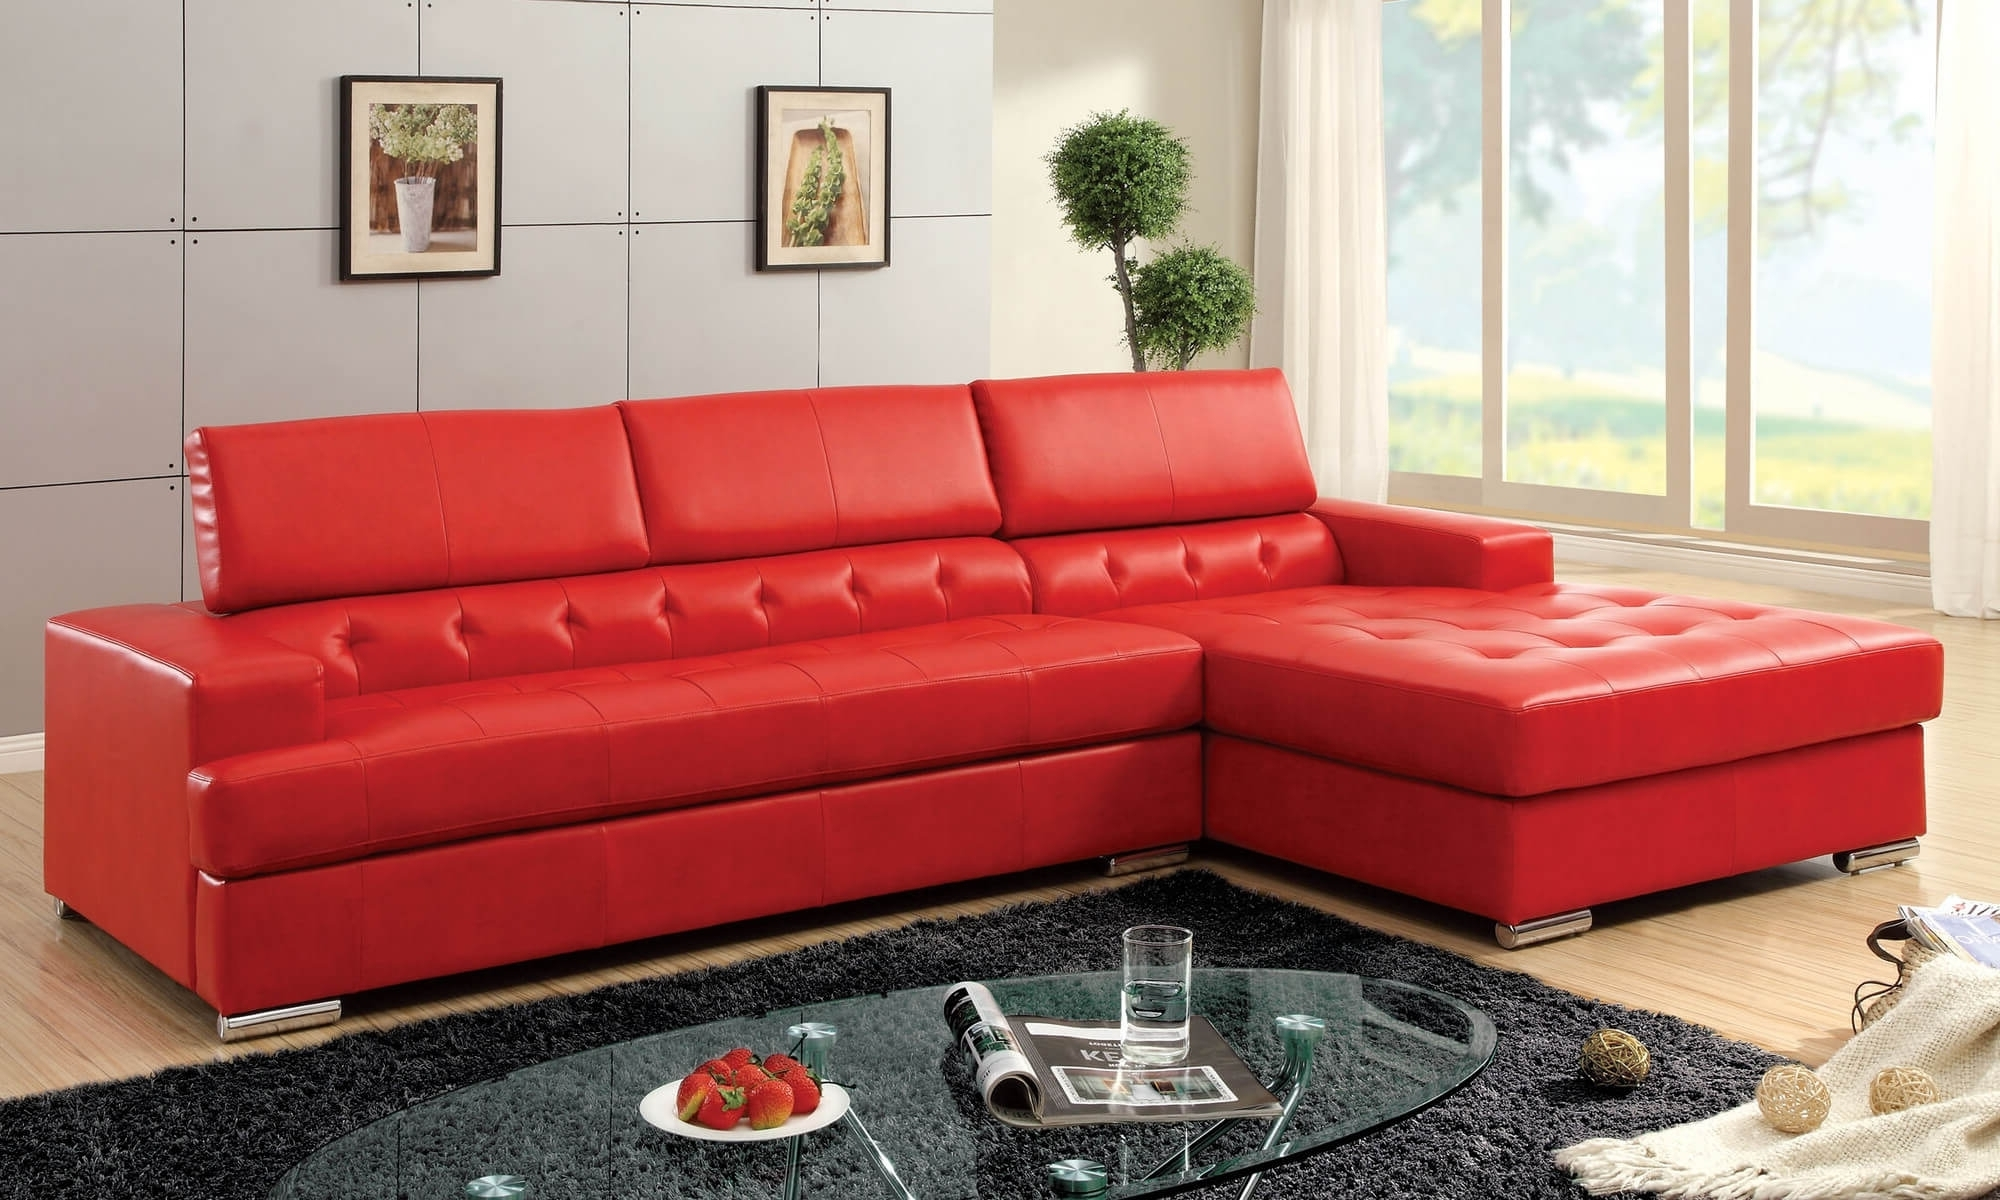 Freedom To Throughout Red Leather Sectionals With Ottoman (View 14 of 20)